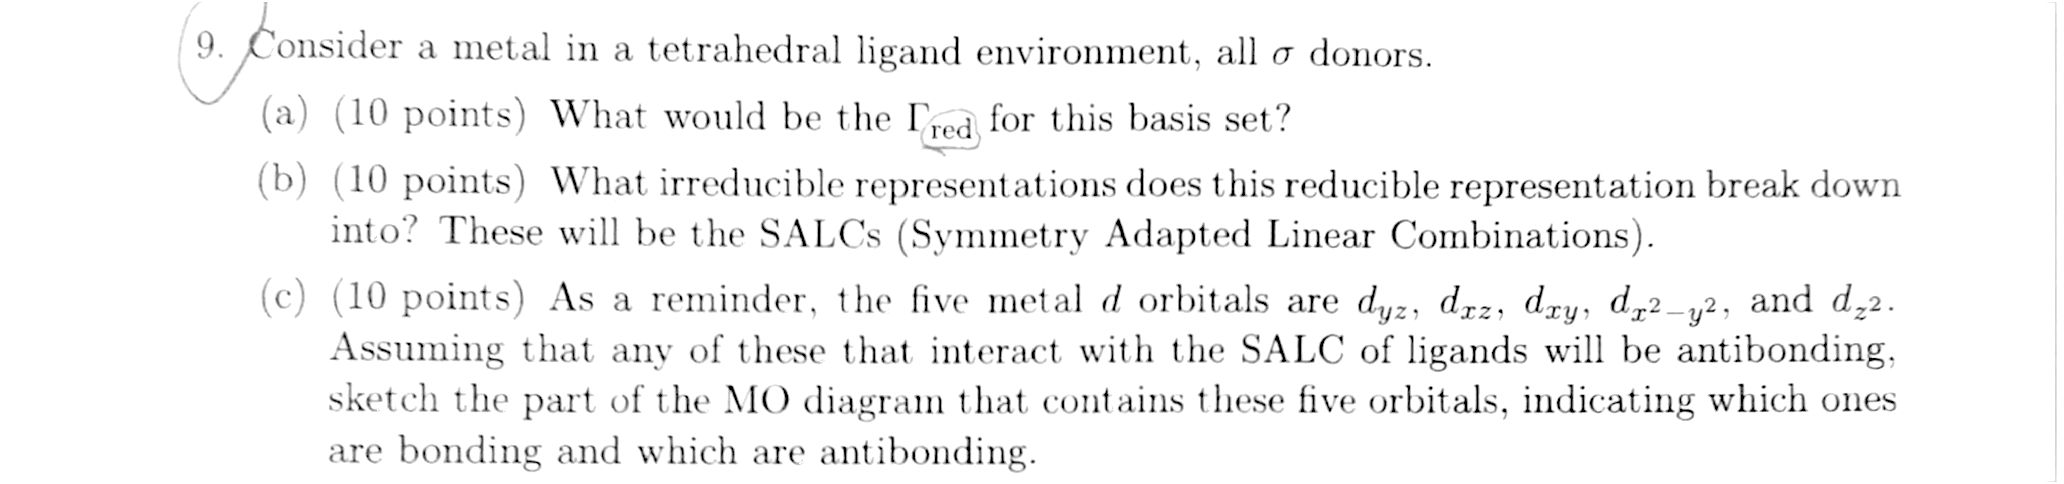 consider a metal in a tetrahedral ligand enviro com inorganic chemistry help